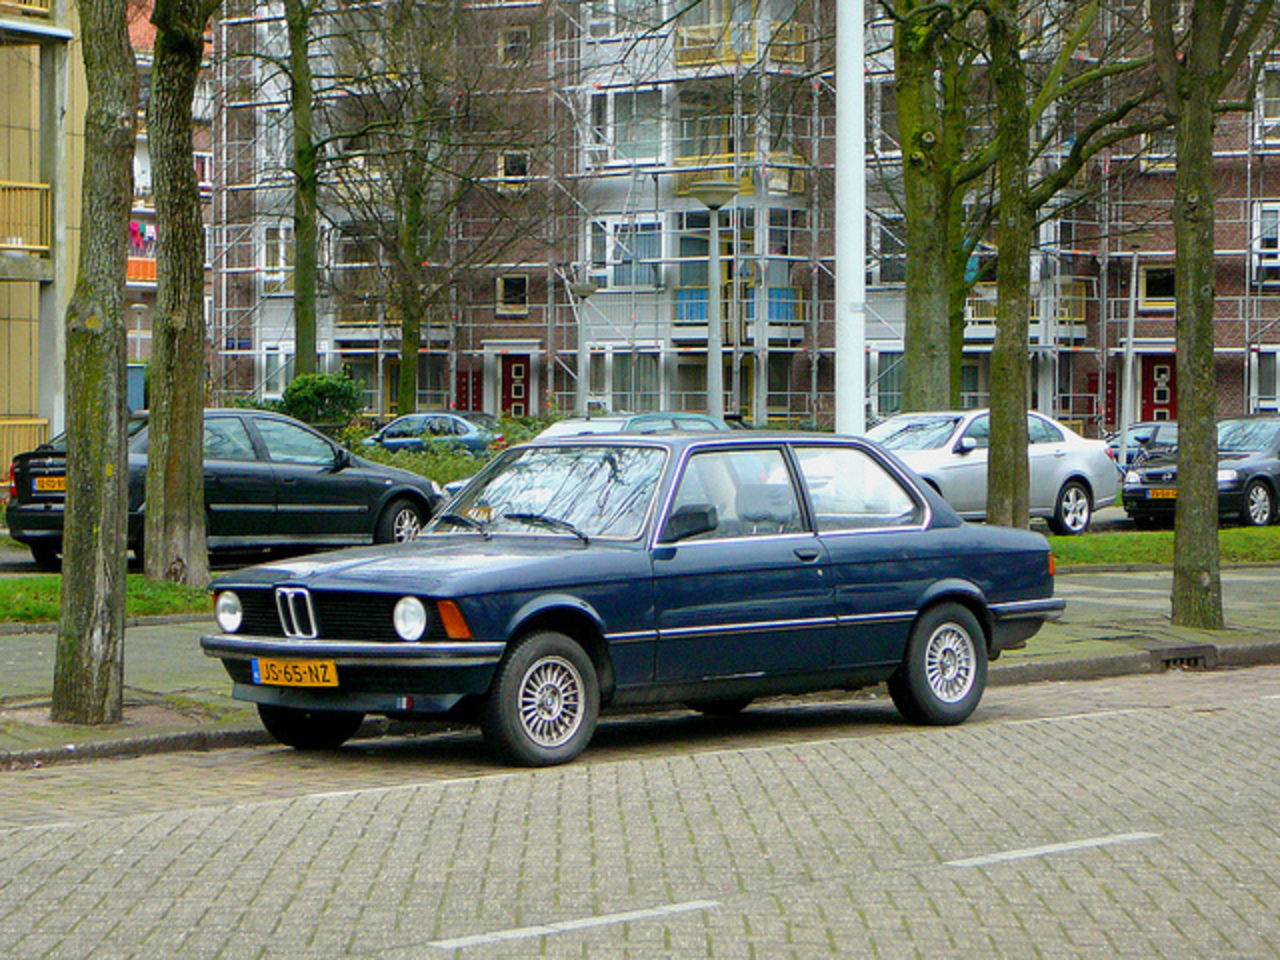 Flickr: The European Cars of the 80s Pool